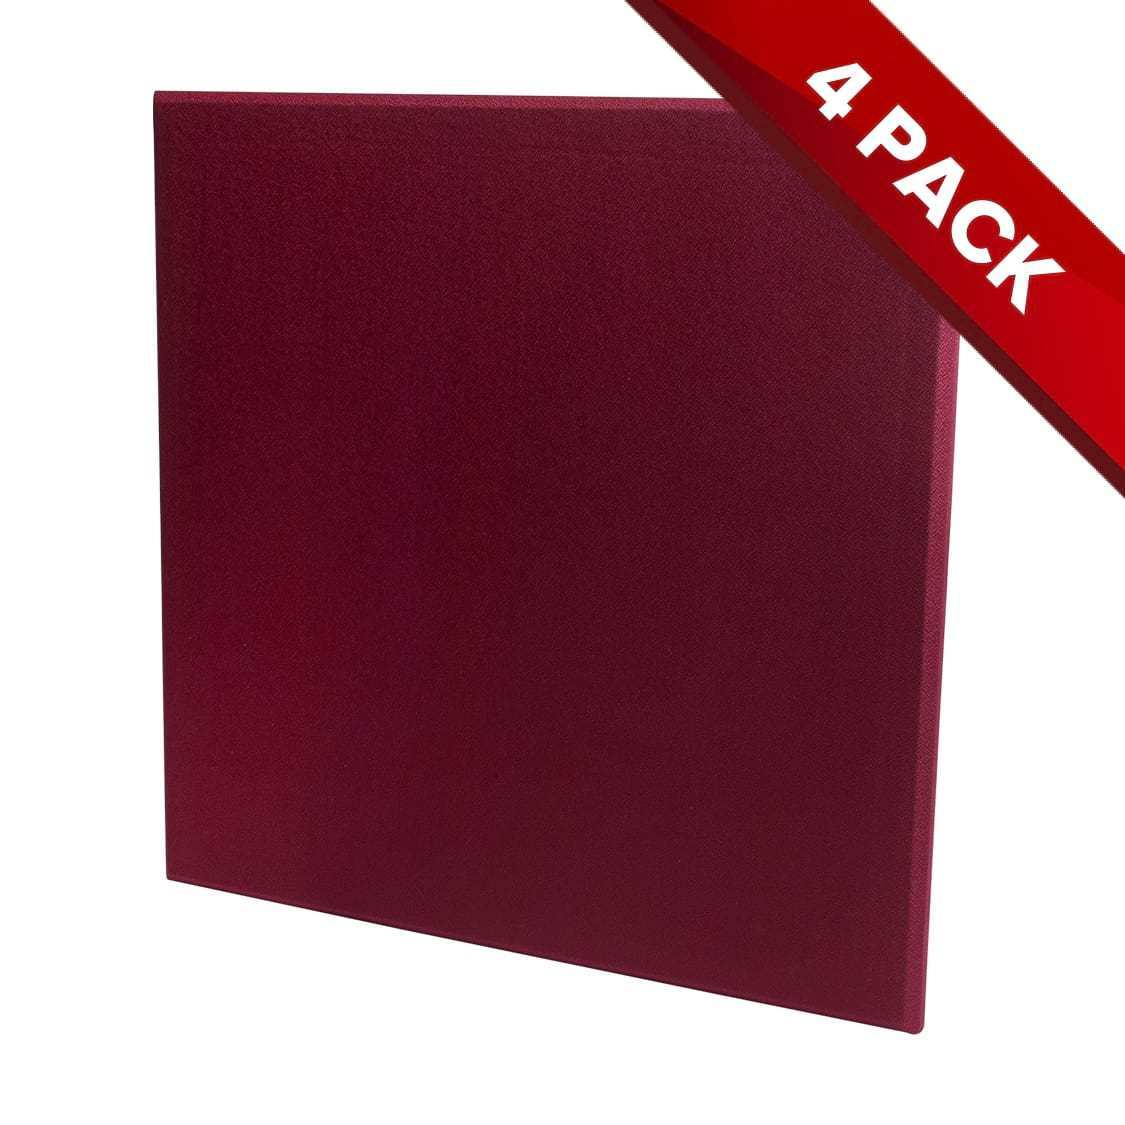 4x Fibreglass Acoustic Treatment Panel - Wine Red - 60cm by 60cm